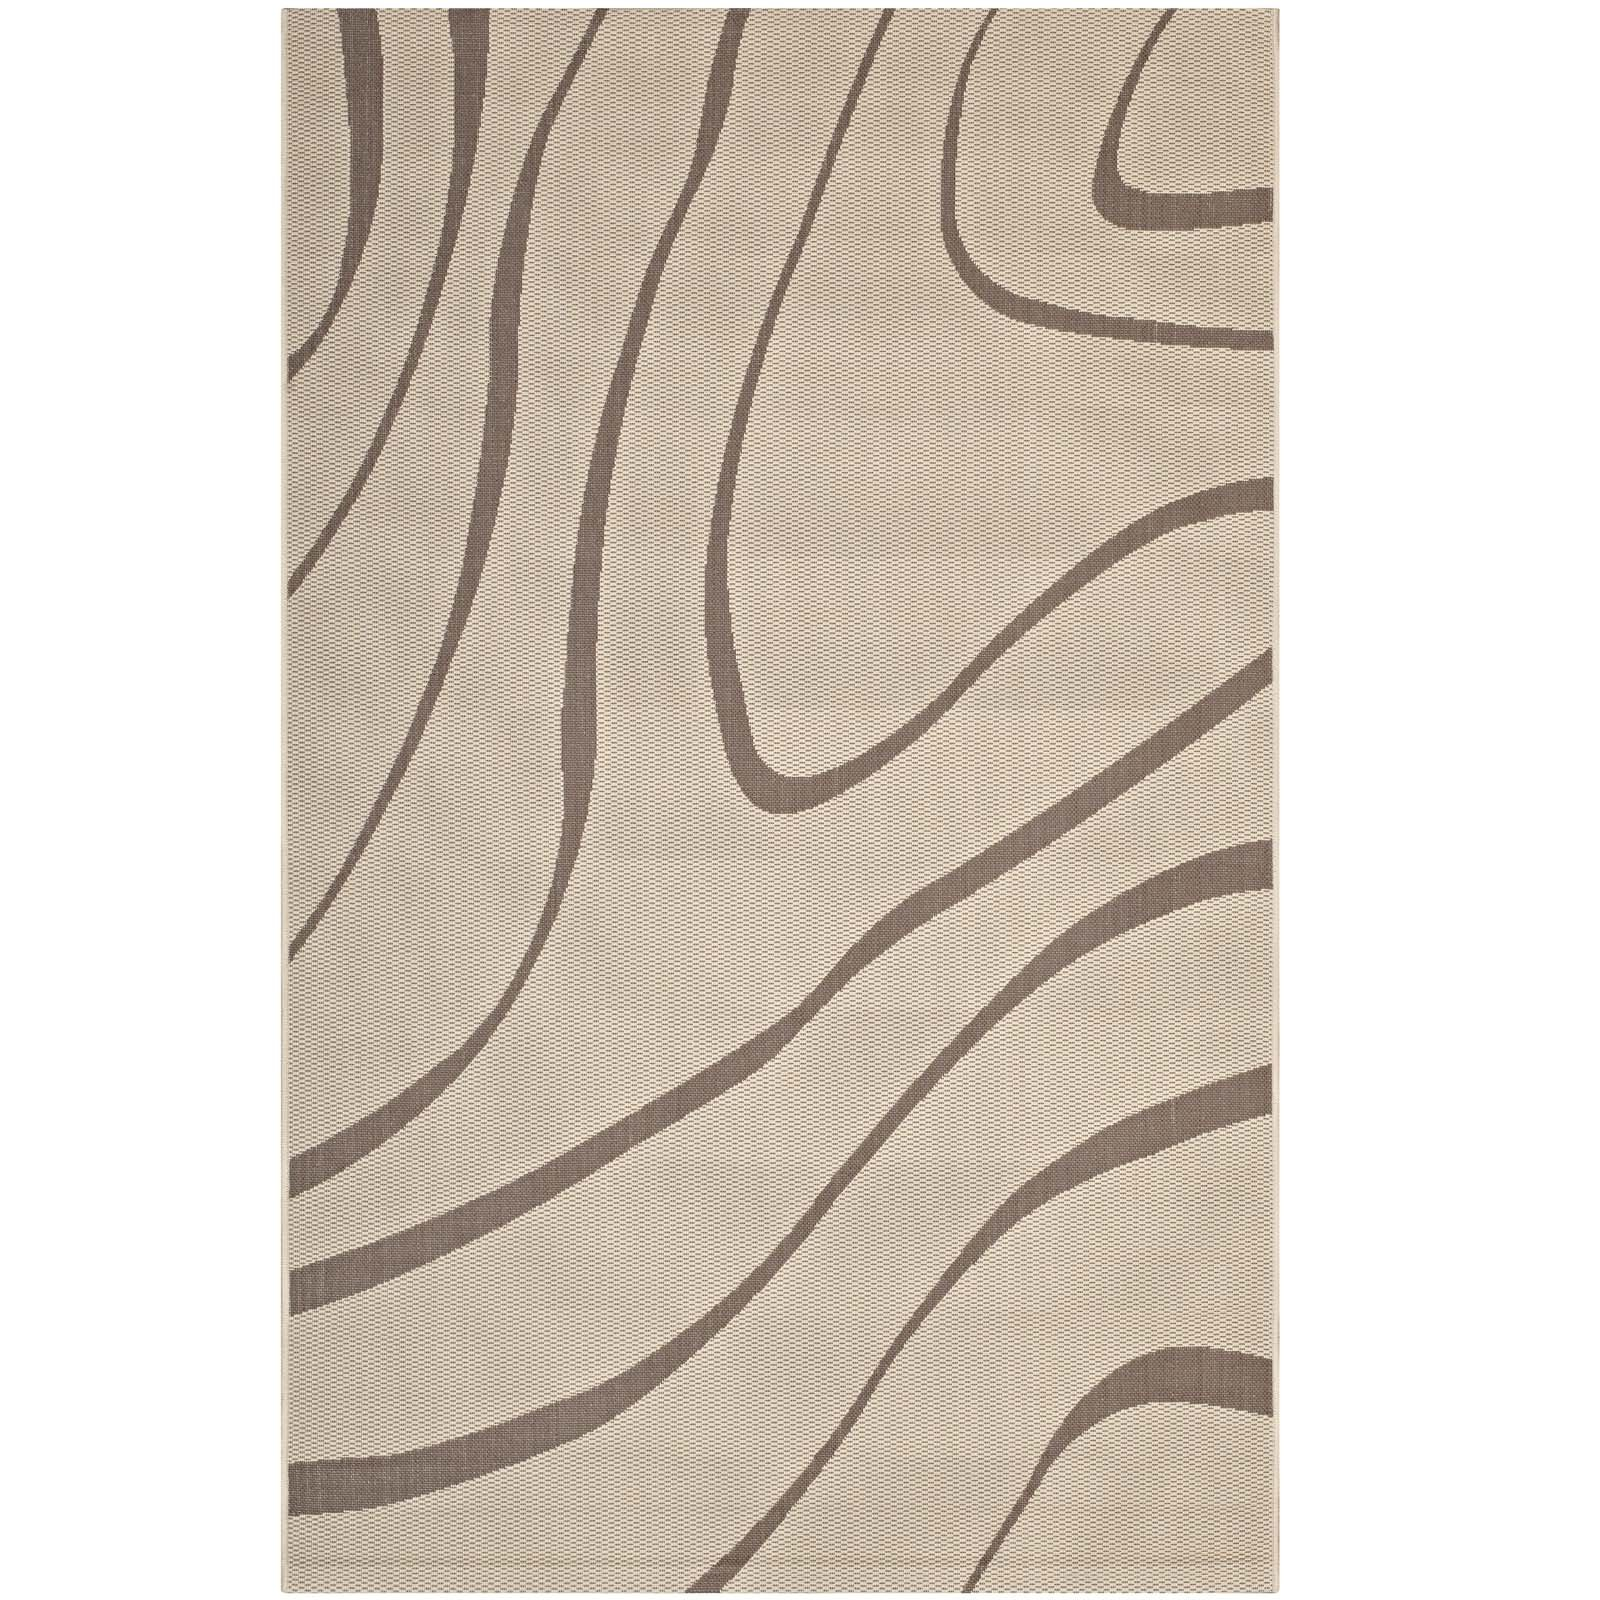 Modway R-1138A-810 Surge Area Rug Chevron with End Borders 5x8, Twin, Light and Dark Beige by Modway